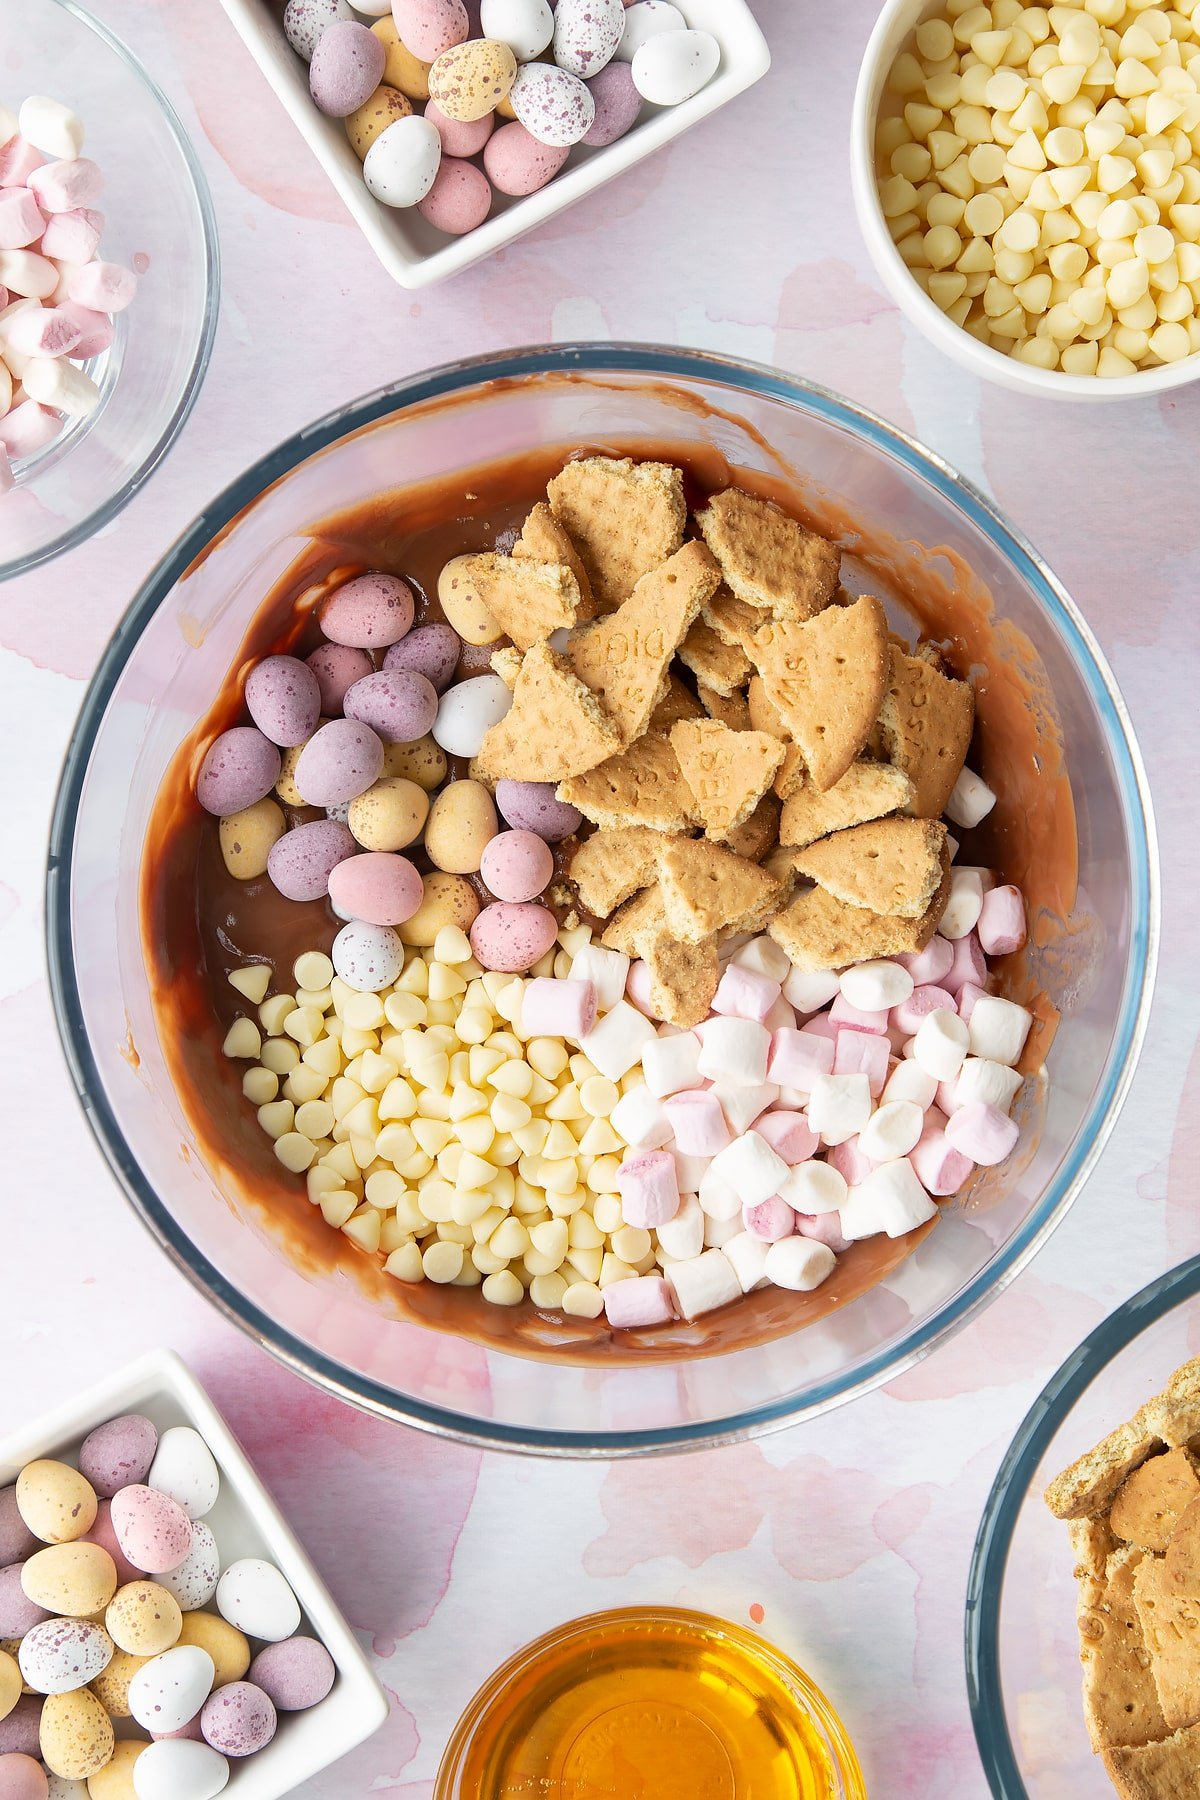 Melted milk chocolate, butter and golden syrup in a glass mixing bowl topped with white chocolate chips, digestives, marshmallows and Mini Eggs. Ingredients to make Mini Egg rocky road surrounds the bowl.